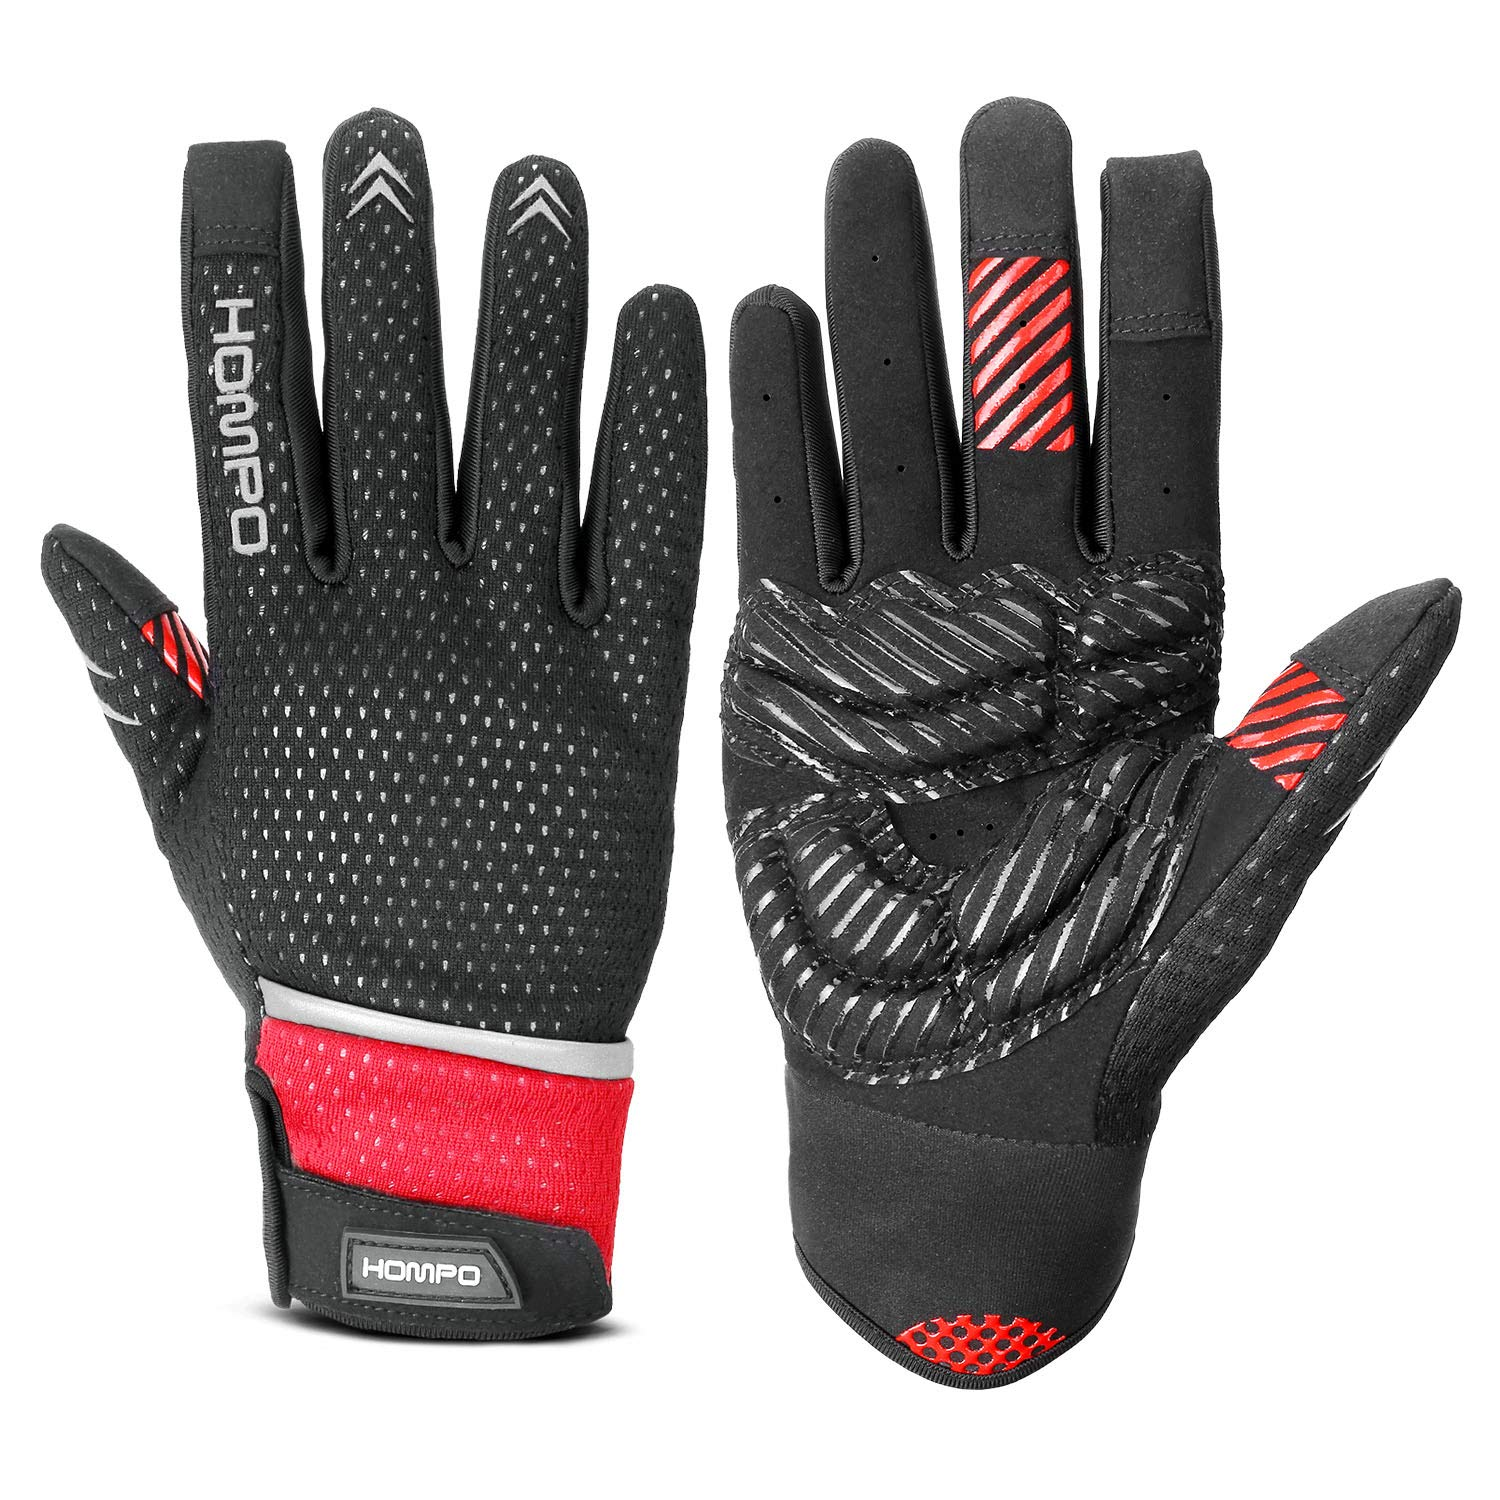 Road Bicycle Gloves for Men HOMPO Cycling Gloves Full Finger Cycle Gloves 5 mm Shock-absorbing Pad Touch Screen Warm Wind-proof and Breathable Mountain Women and Children